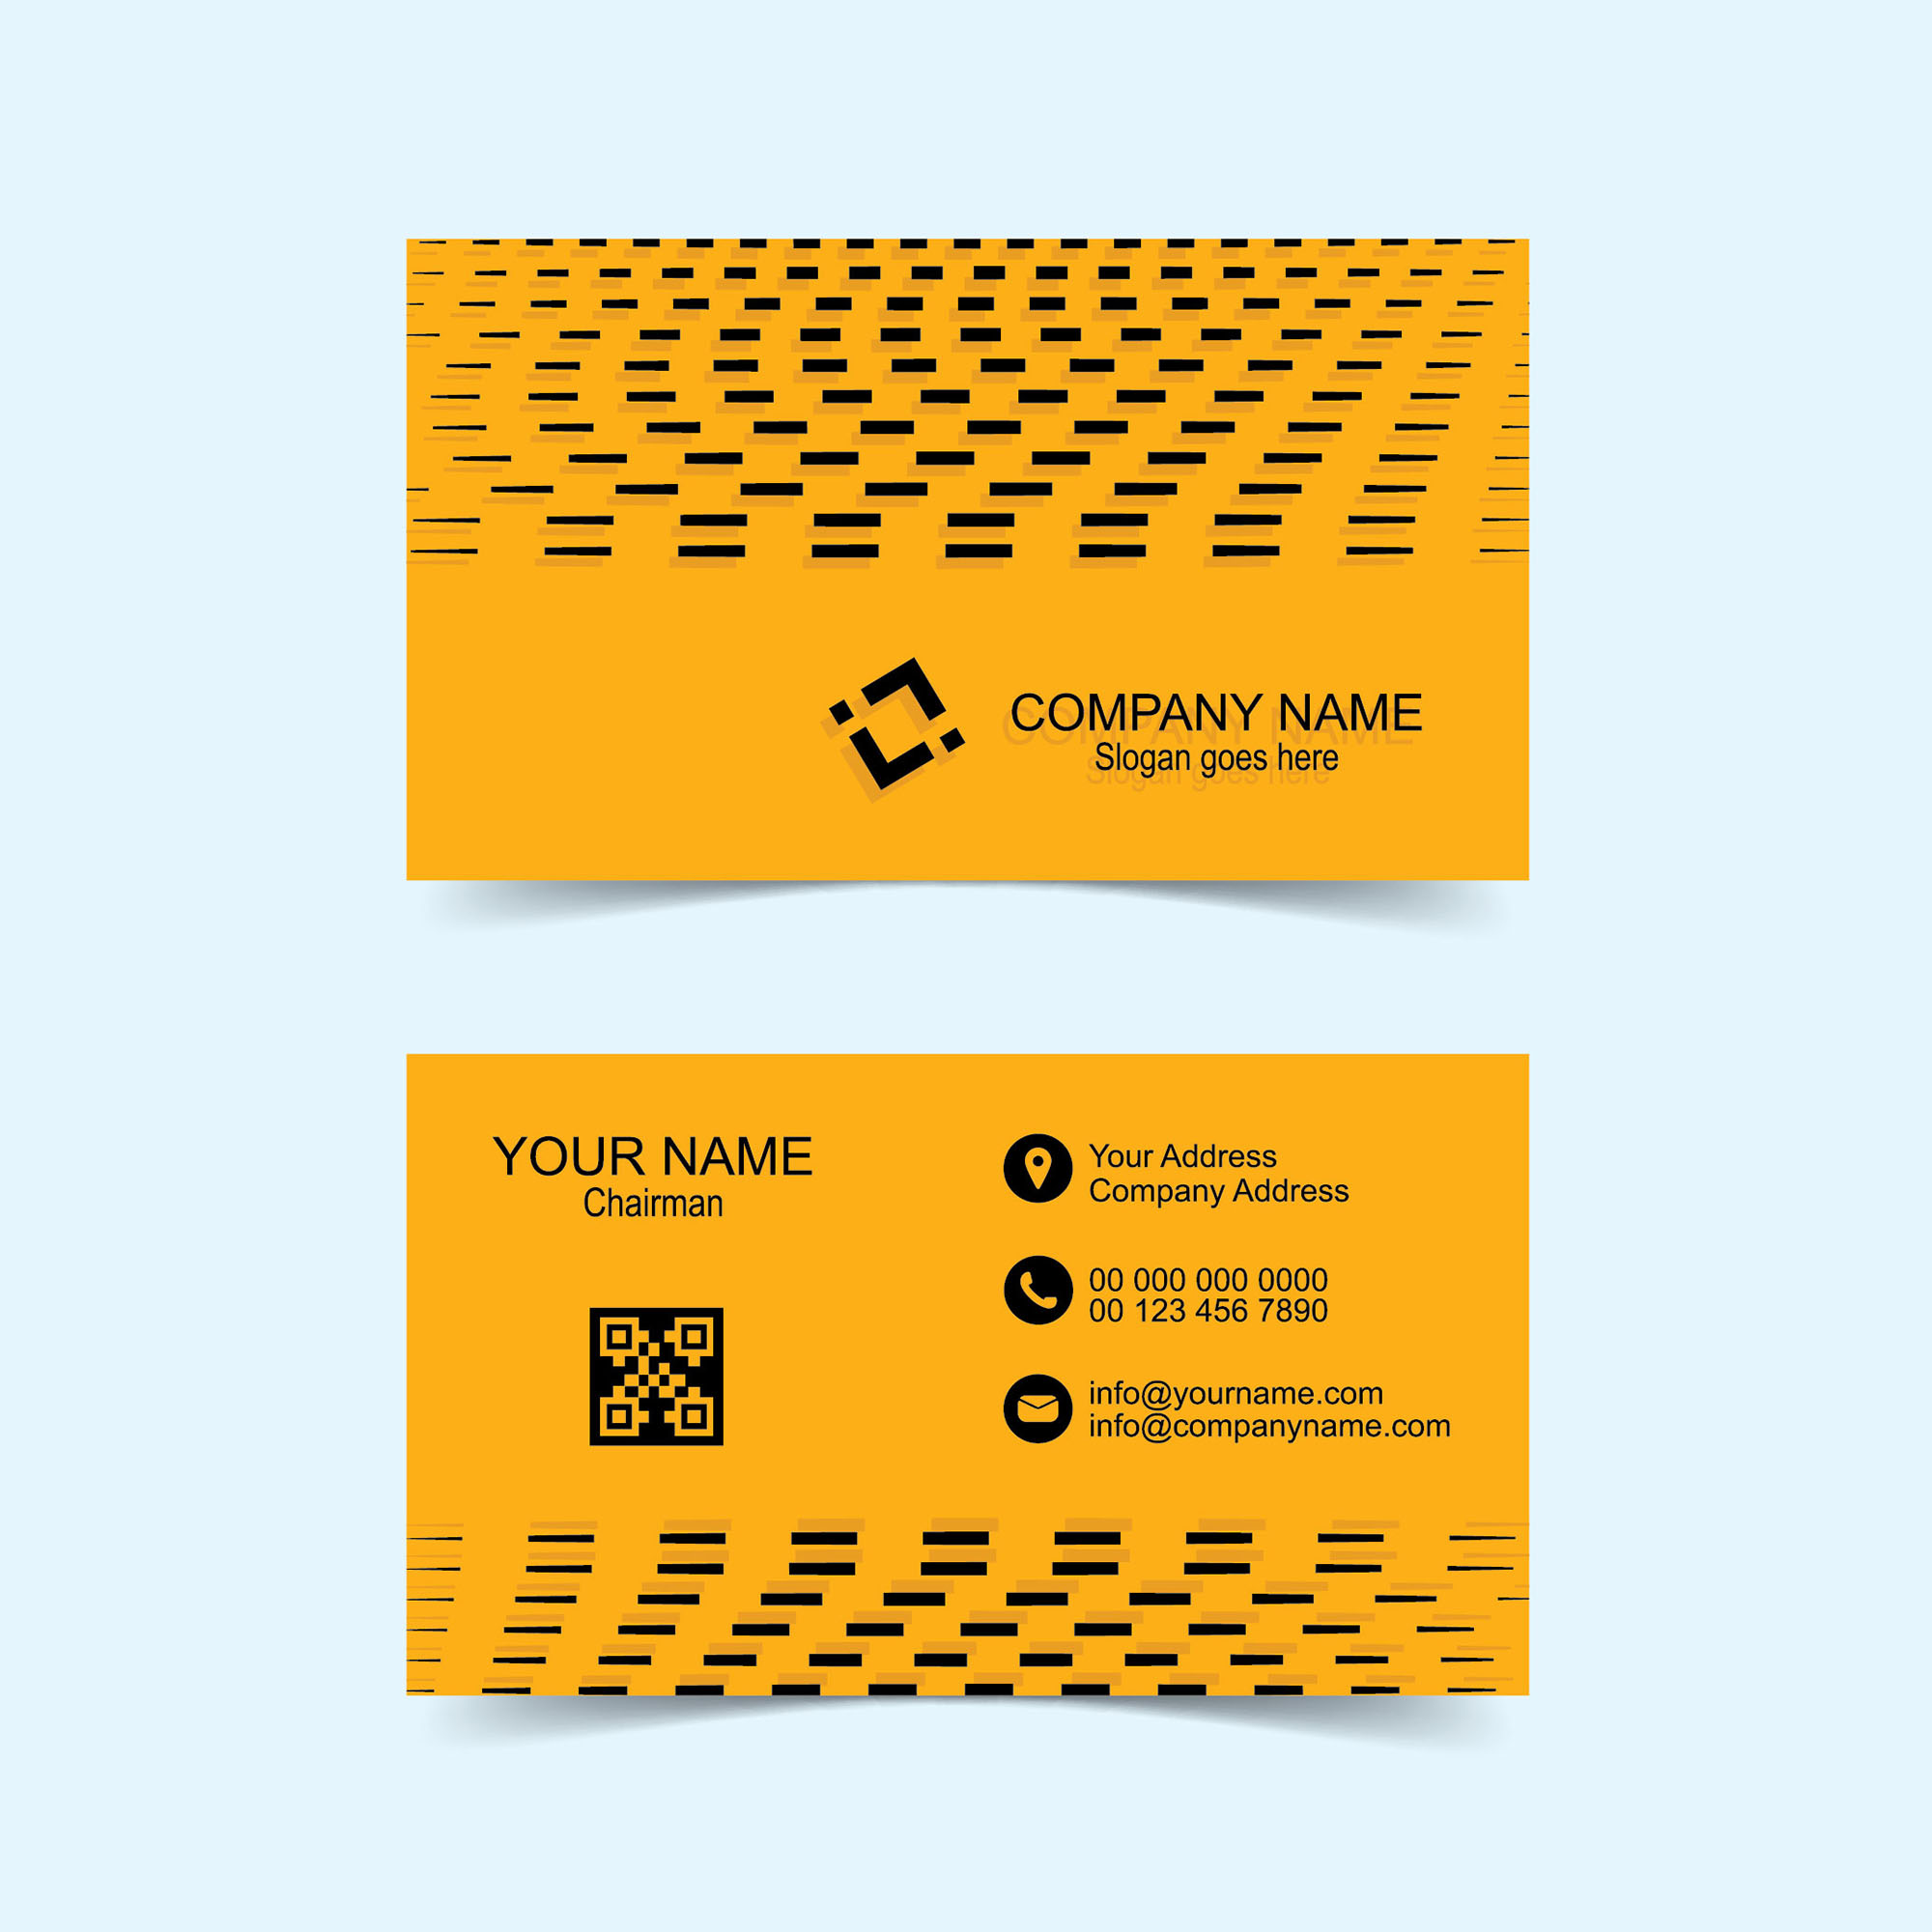 Free printable business card template download wisxi business card business cards business card design business card template design templates alramifo Gallery